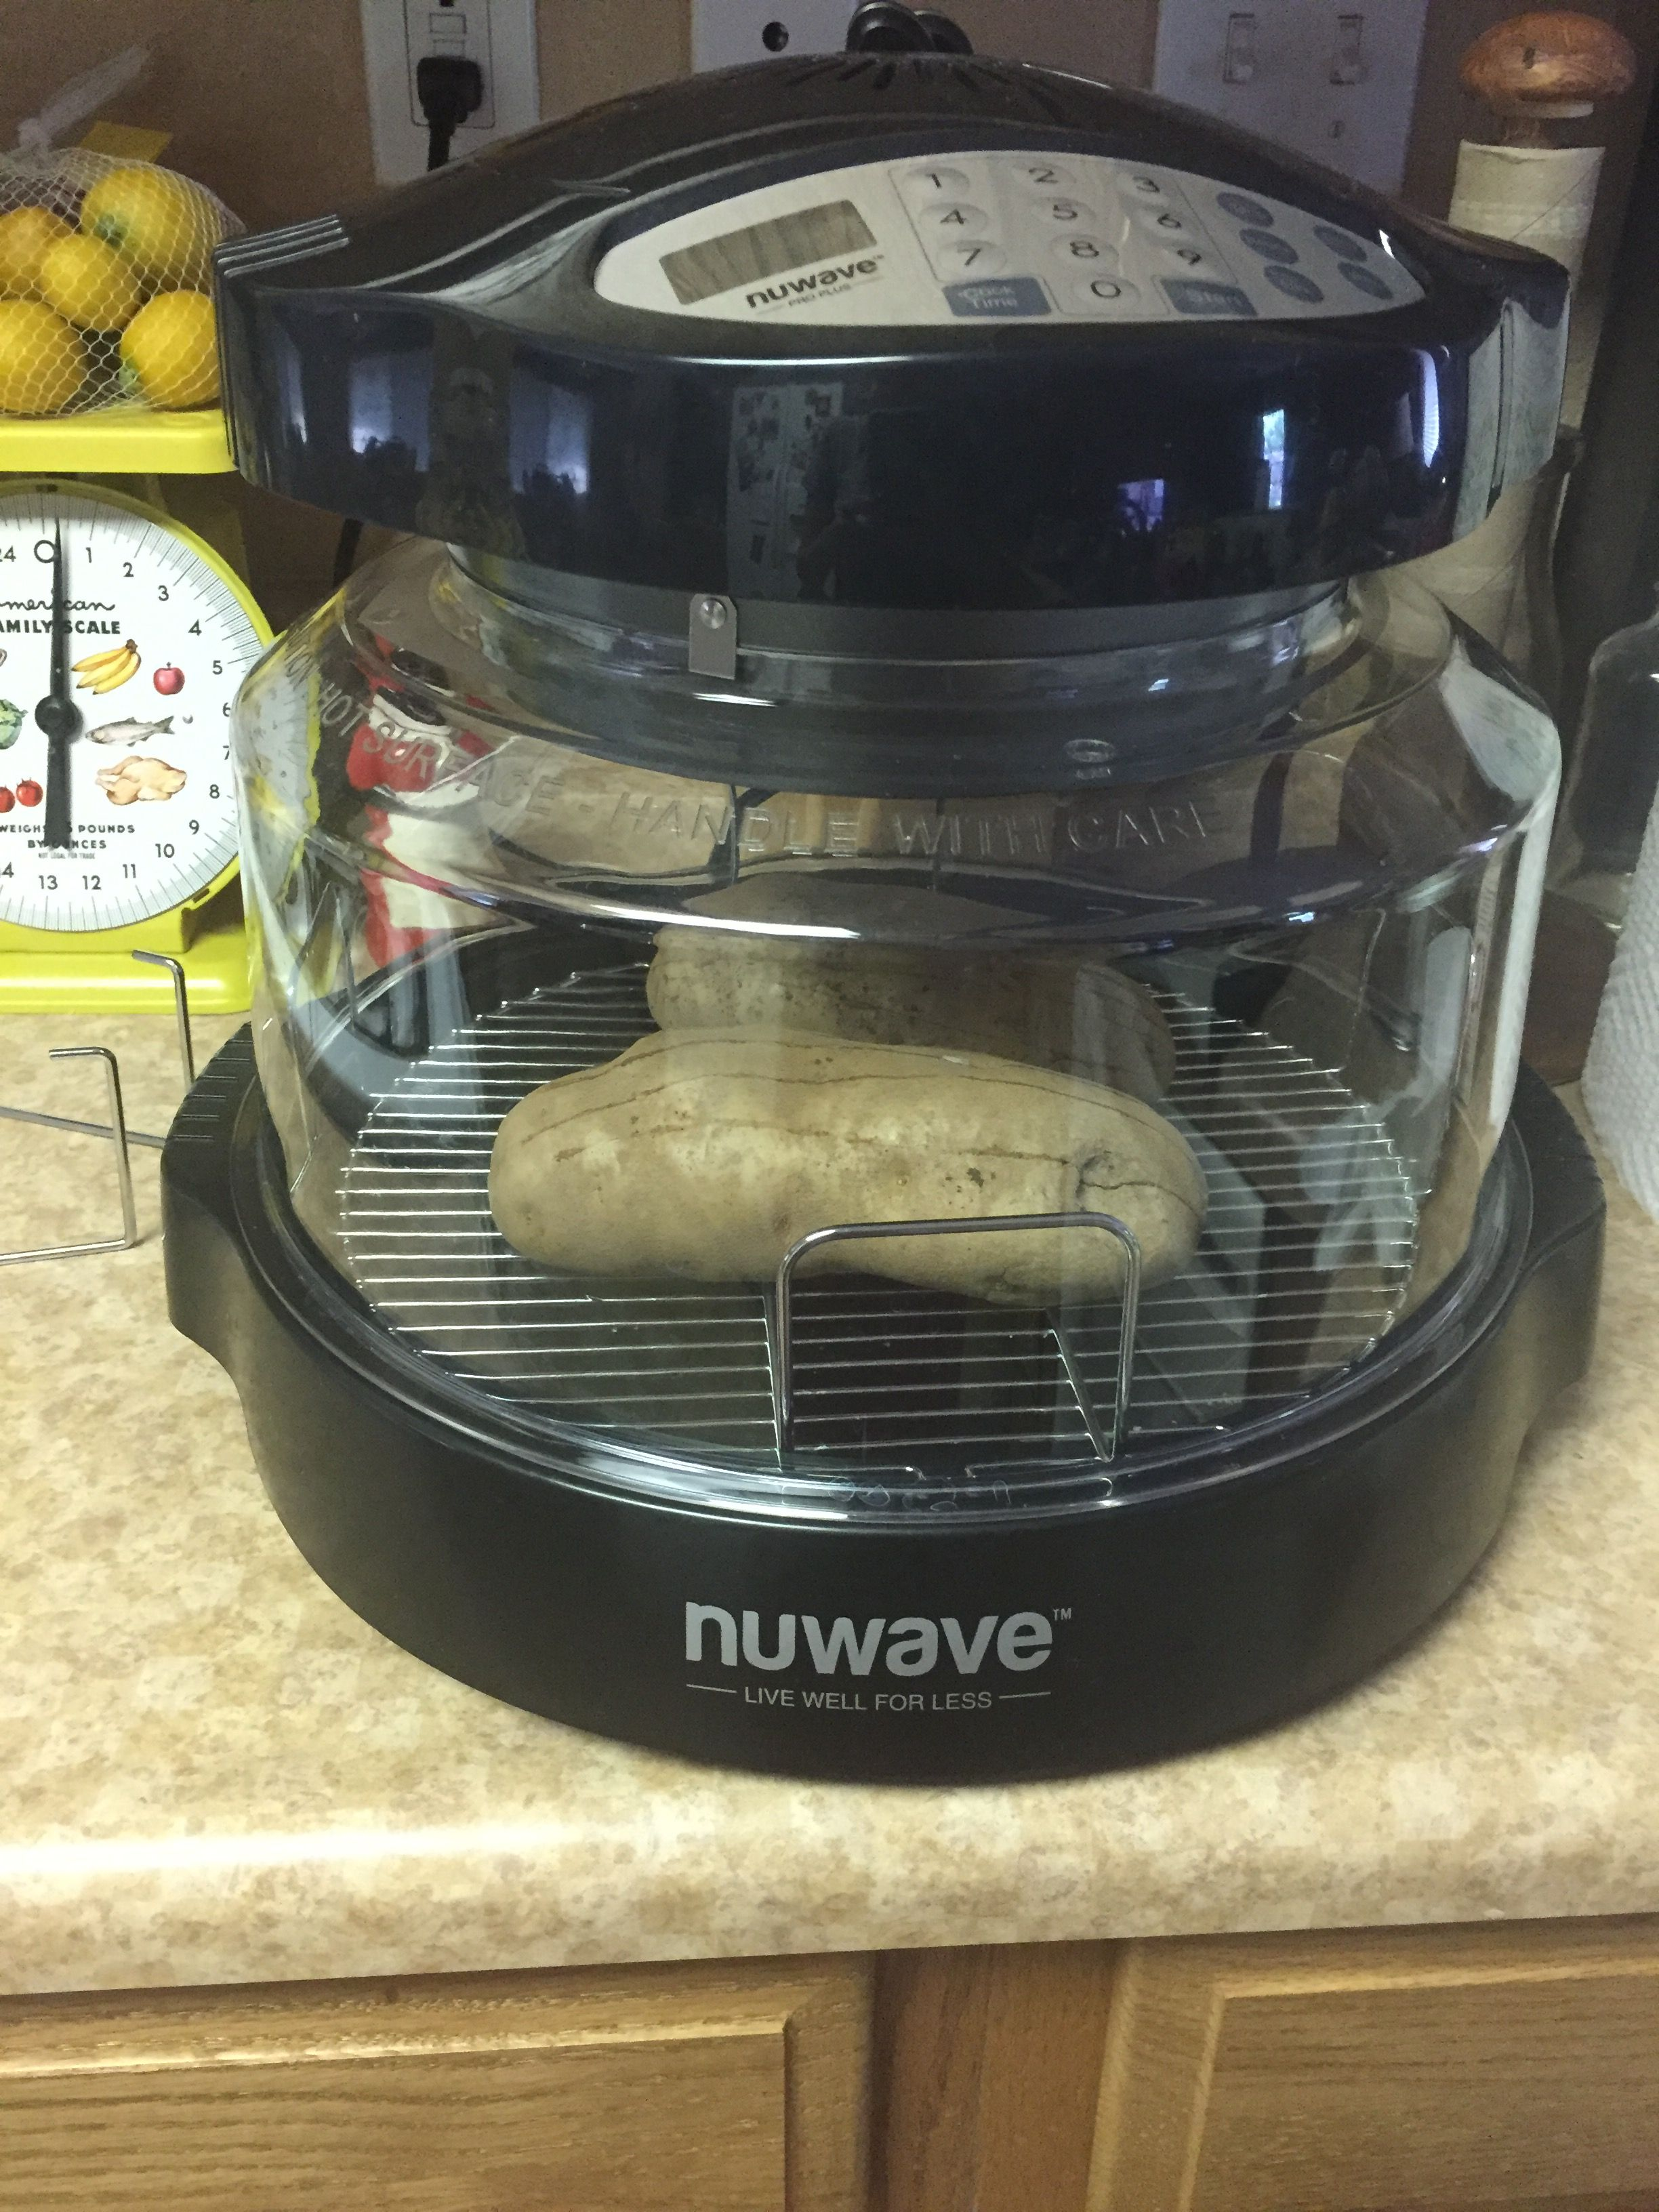 how to cook a potato in the microwave and oven